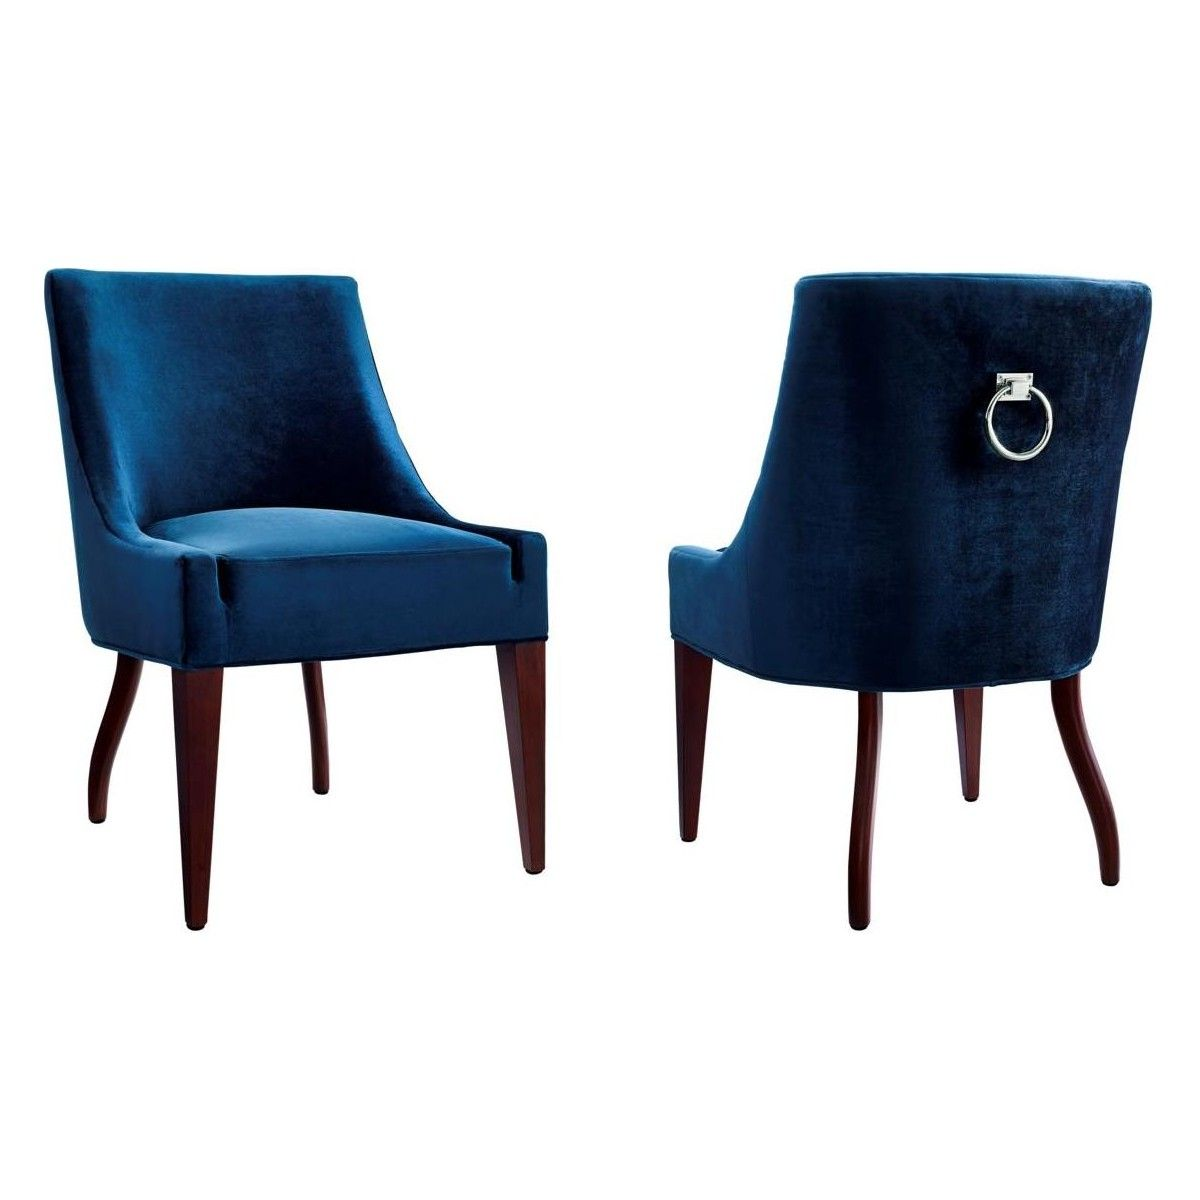 Blue Velvet Chair Tov Furniture Dover Blue Velvet Dining Chair W Silver